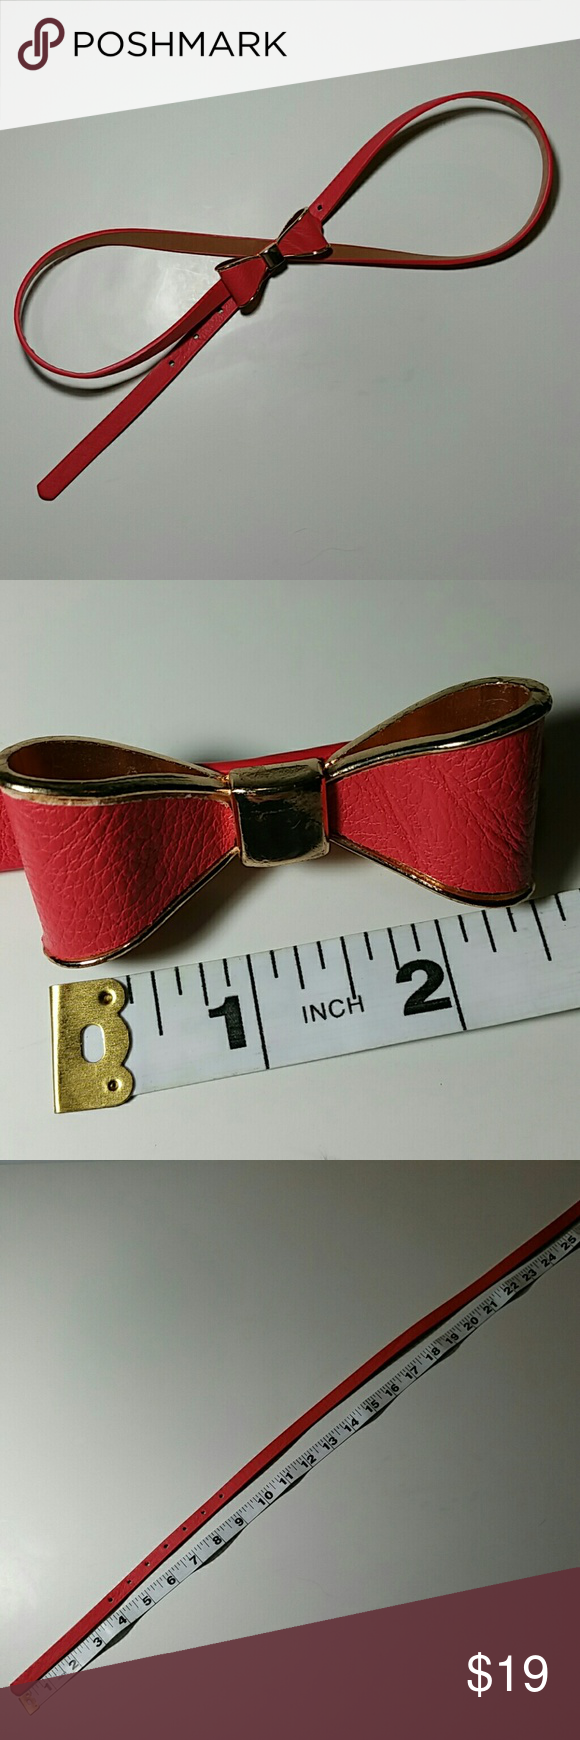 50% on 3+ Adorable Pink Bow Skinny Belt EUC No brand or markings on it. Half inch wide. Bow is made from metal and has gold accents. 28 to 32 inch waist. Accessories Belts